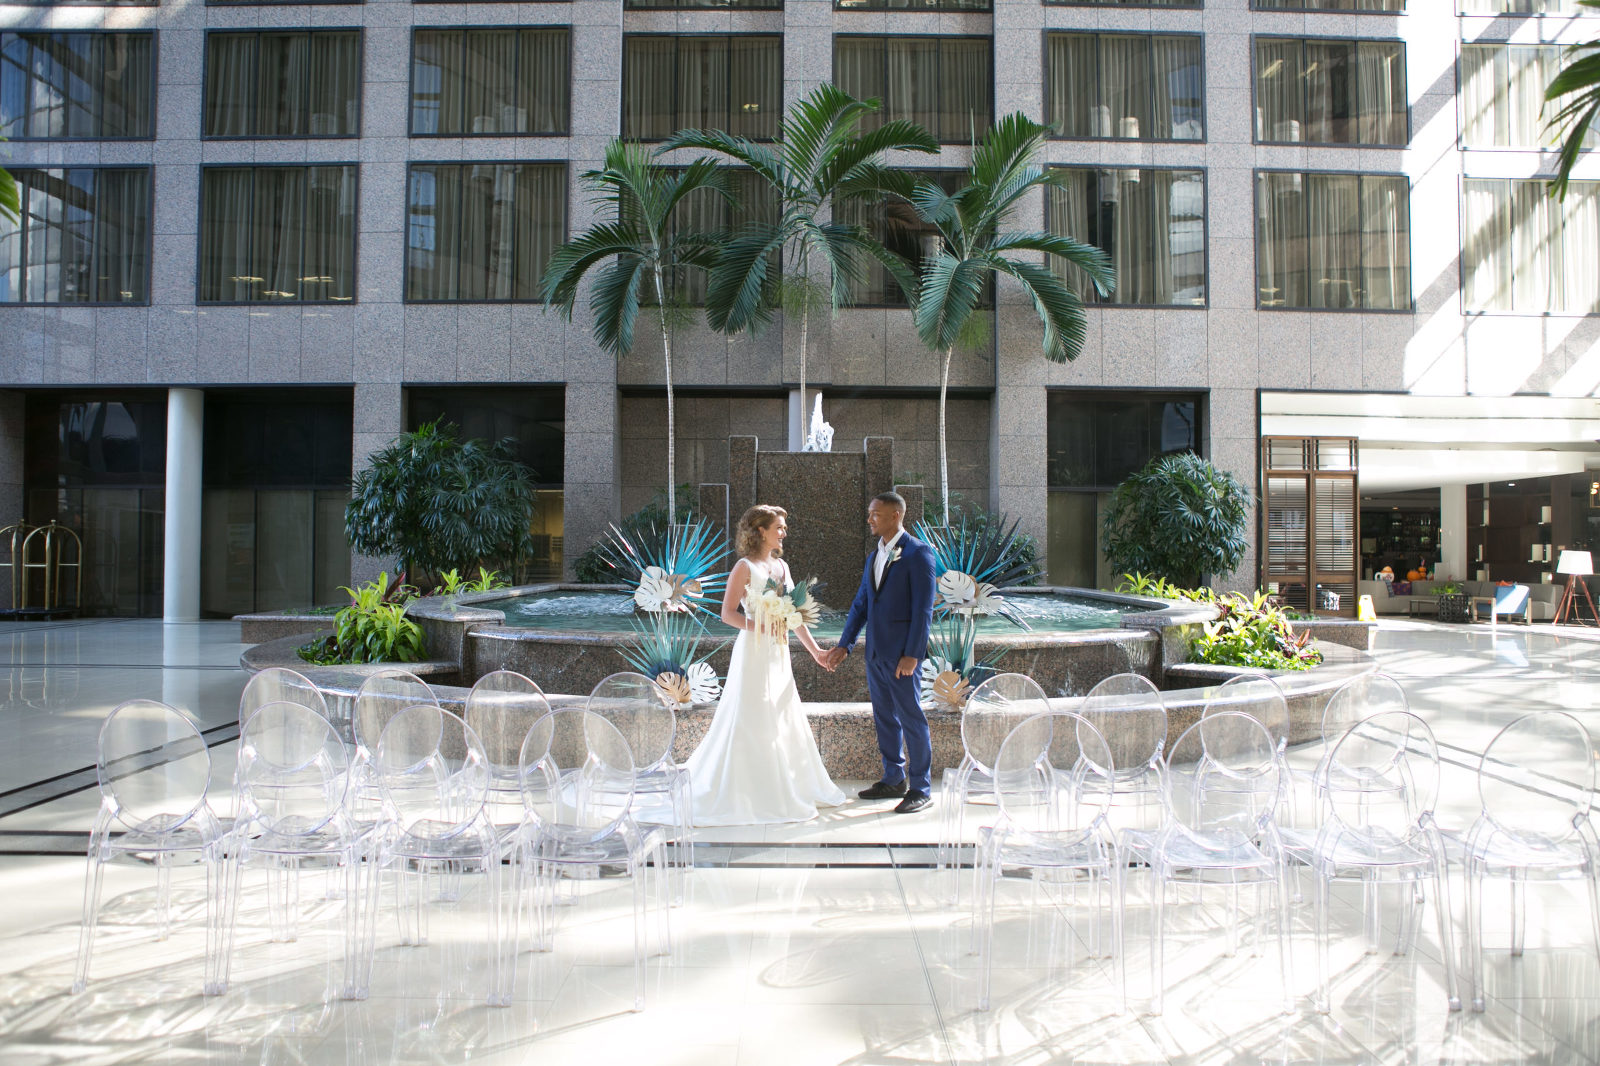 Unique Tropical Wedding Ceremony Decor, Acrylic Ghost Chair Seating, Bride and Groom Standing in Front of Fountain with Palm Tree Leave Arrangements   Tampa Wedding Chair Rentals Gabro Event Services   Wedding Planner and Florist John Campbell Weddings   Wedding Photographer Carrie Wildes Photography   Tampa Wedding Venue Centre Club